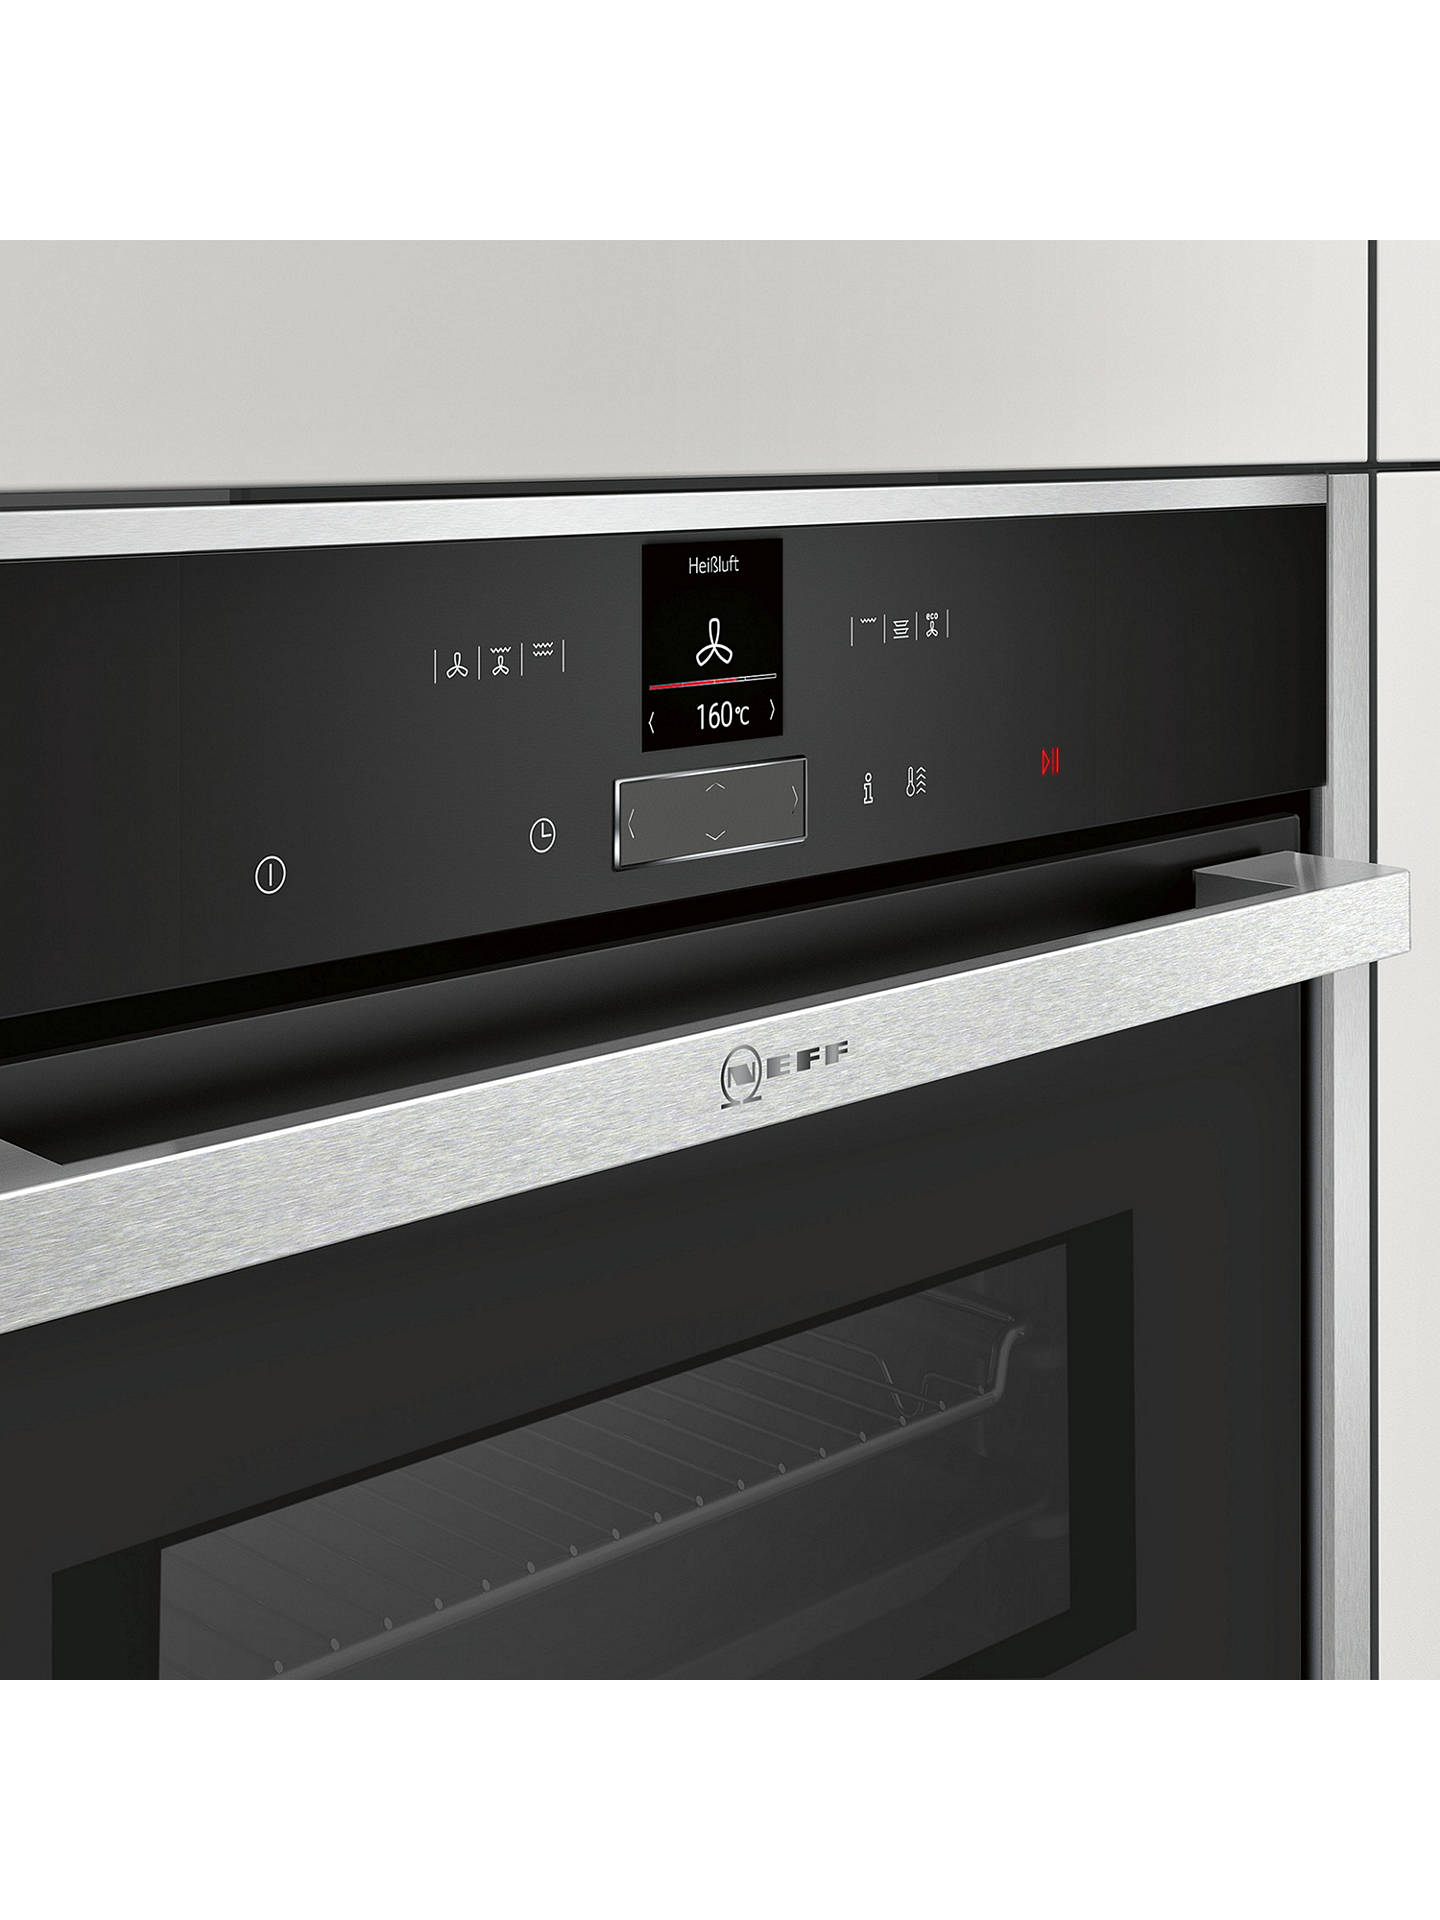 BuyNeff C17MR02N0B Built-in Combination Microwave Oven, Stainless Steel Online at johnlewis.com